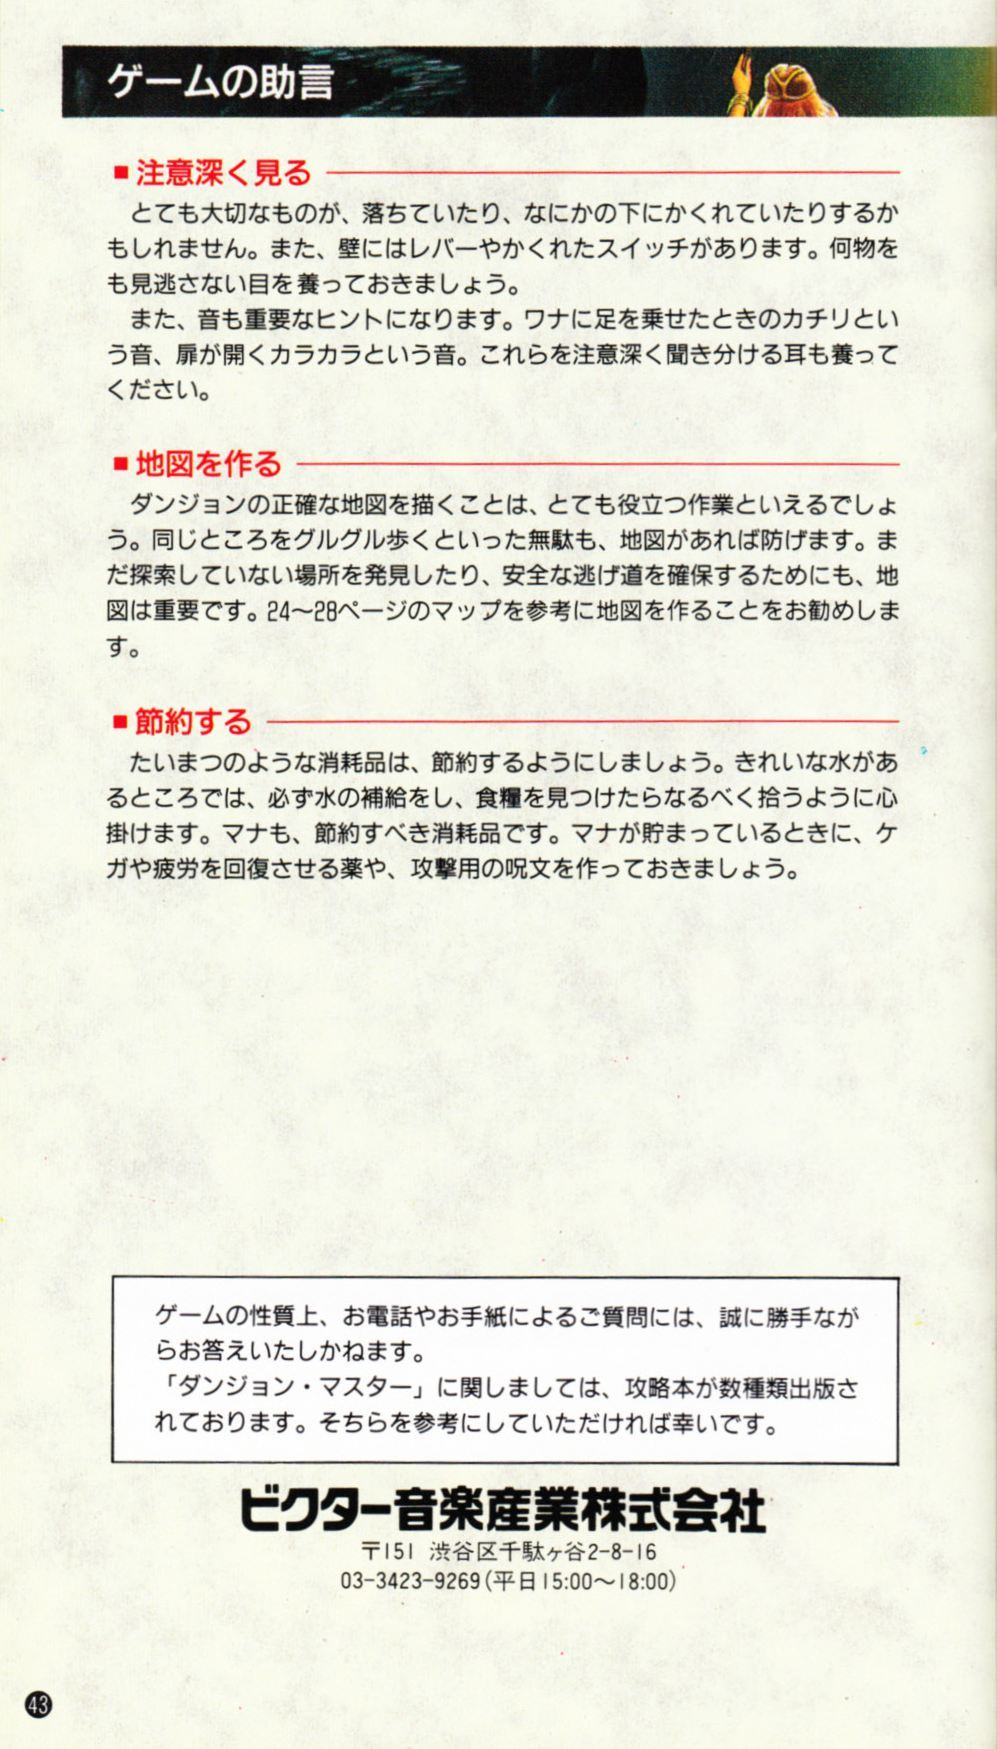 Game - Dungeon Master - JP - Super Famicom - Manual - Page 046 - Scan